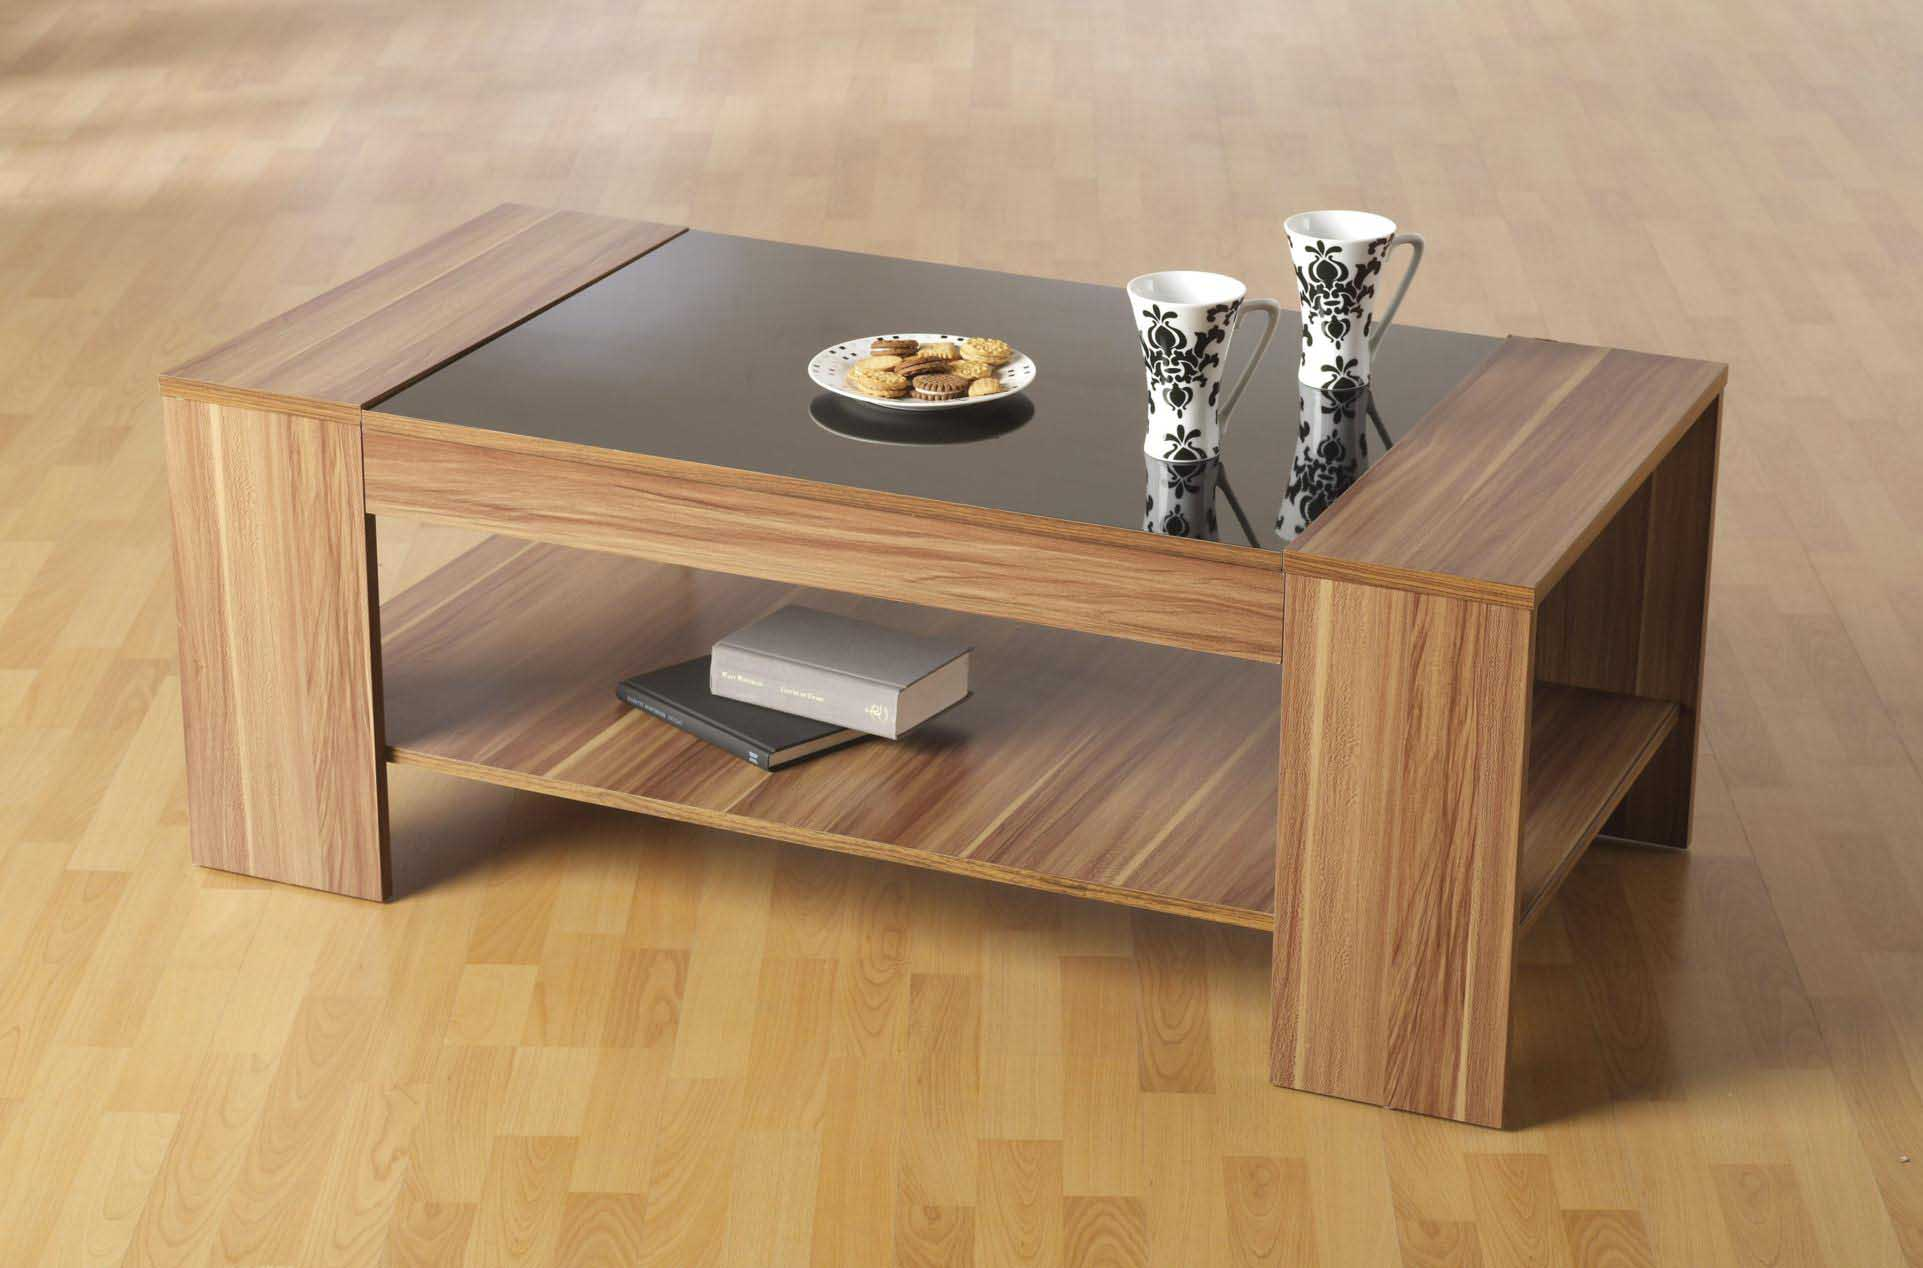 Glass Wood Coffee Table Professionally Designed Good Luck To All Those Drawer Wood Storage Accent Side Table (Image 6 of 10)